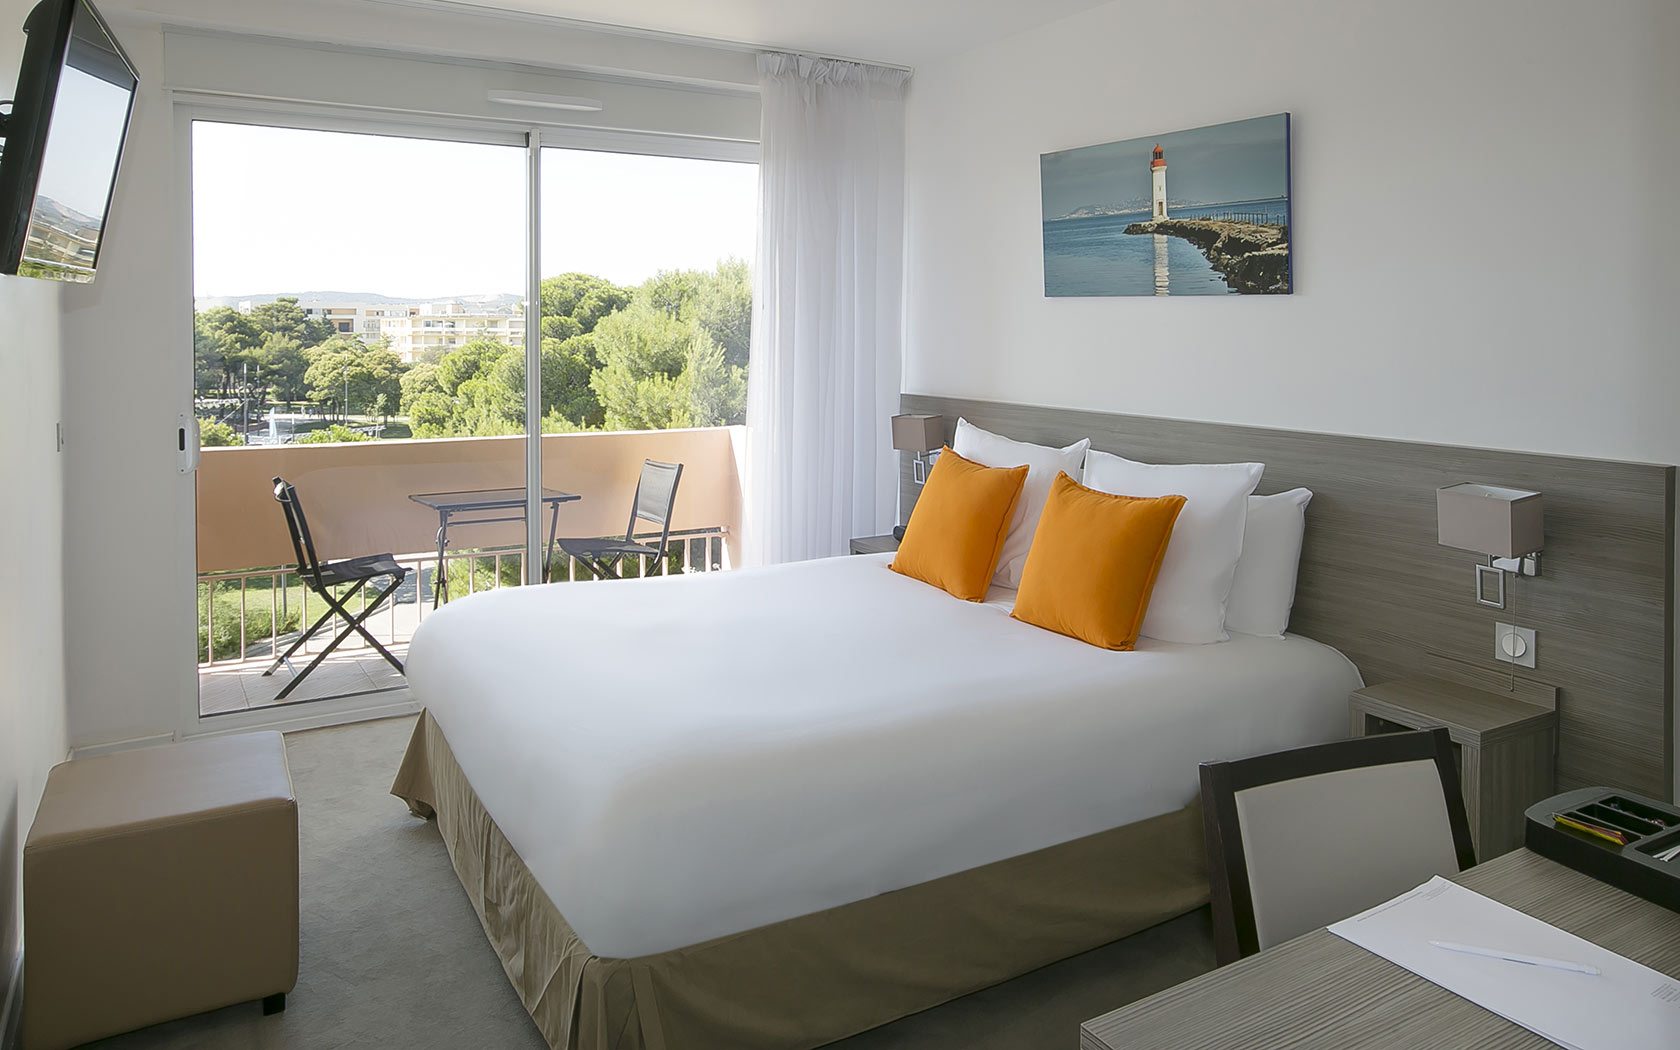 hotel-des-thermes-best-room-languedoc-roussillon